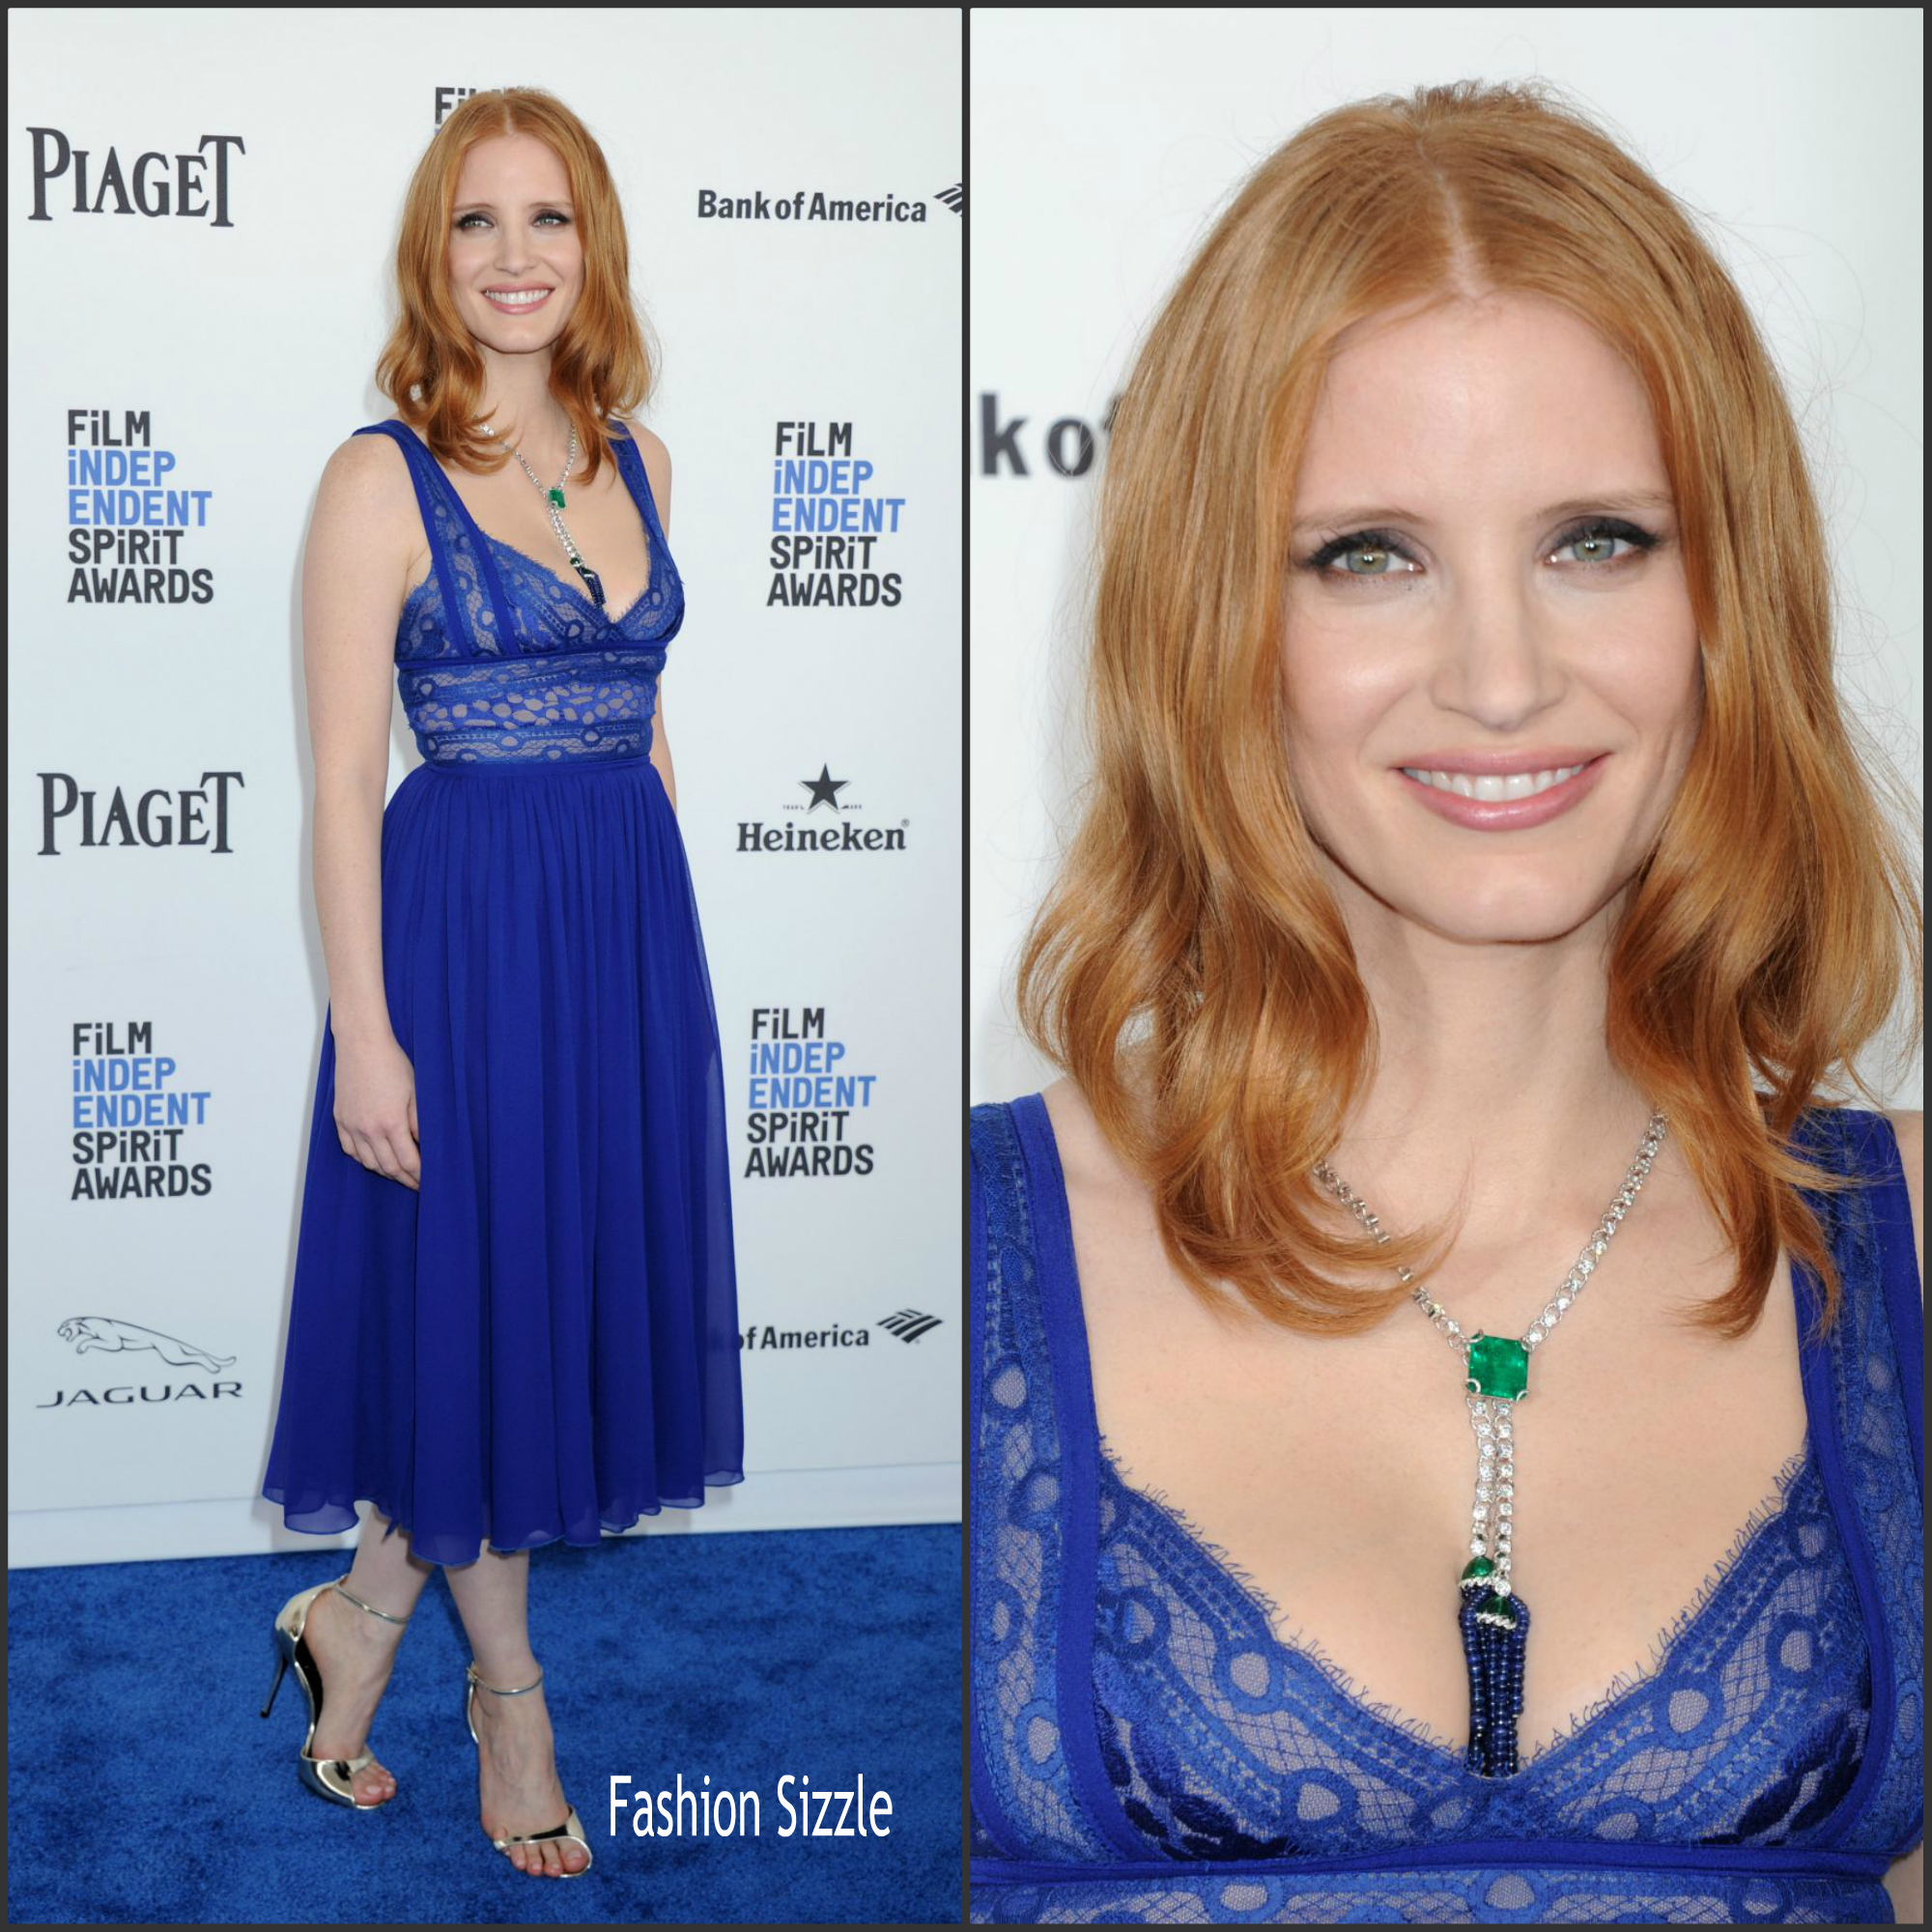 jessica-chastain-in-elie-saab-2016-film-independent-spirit-awards